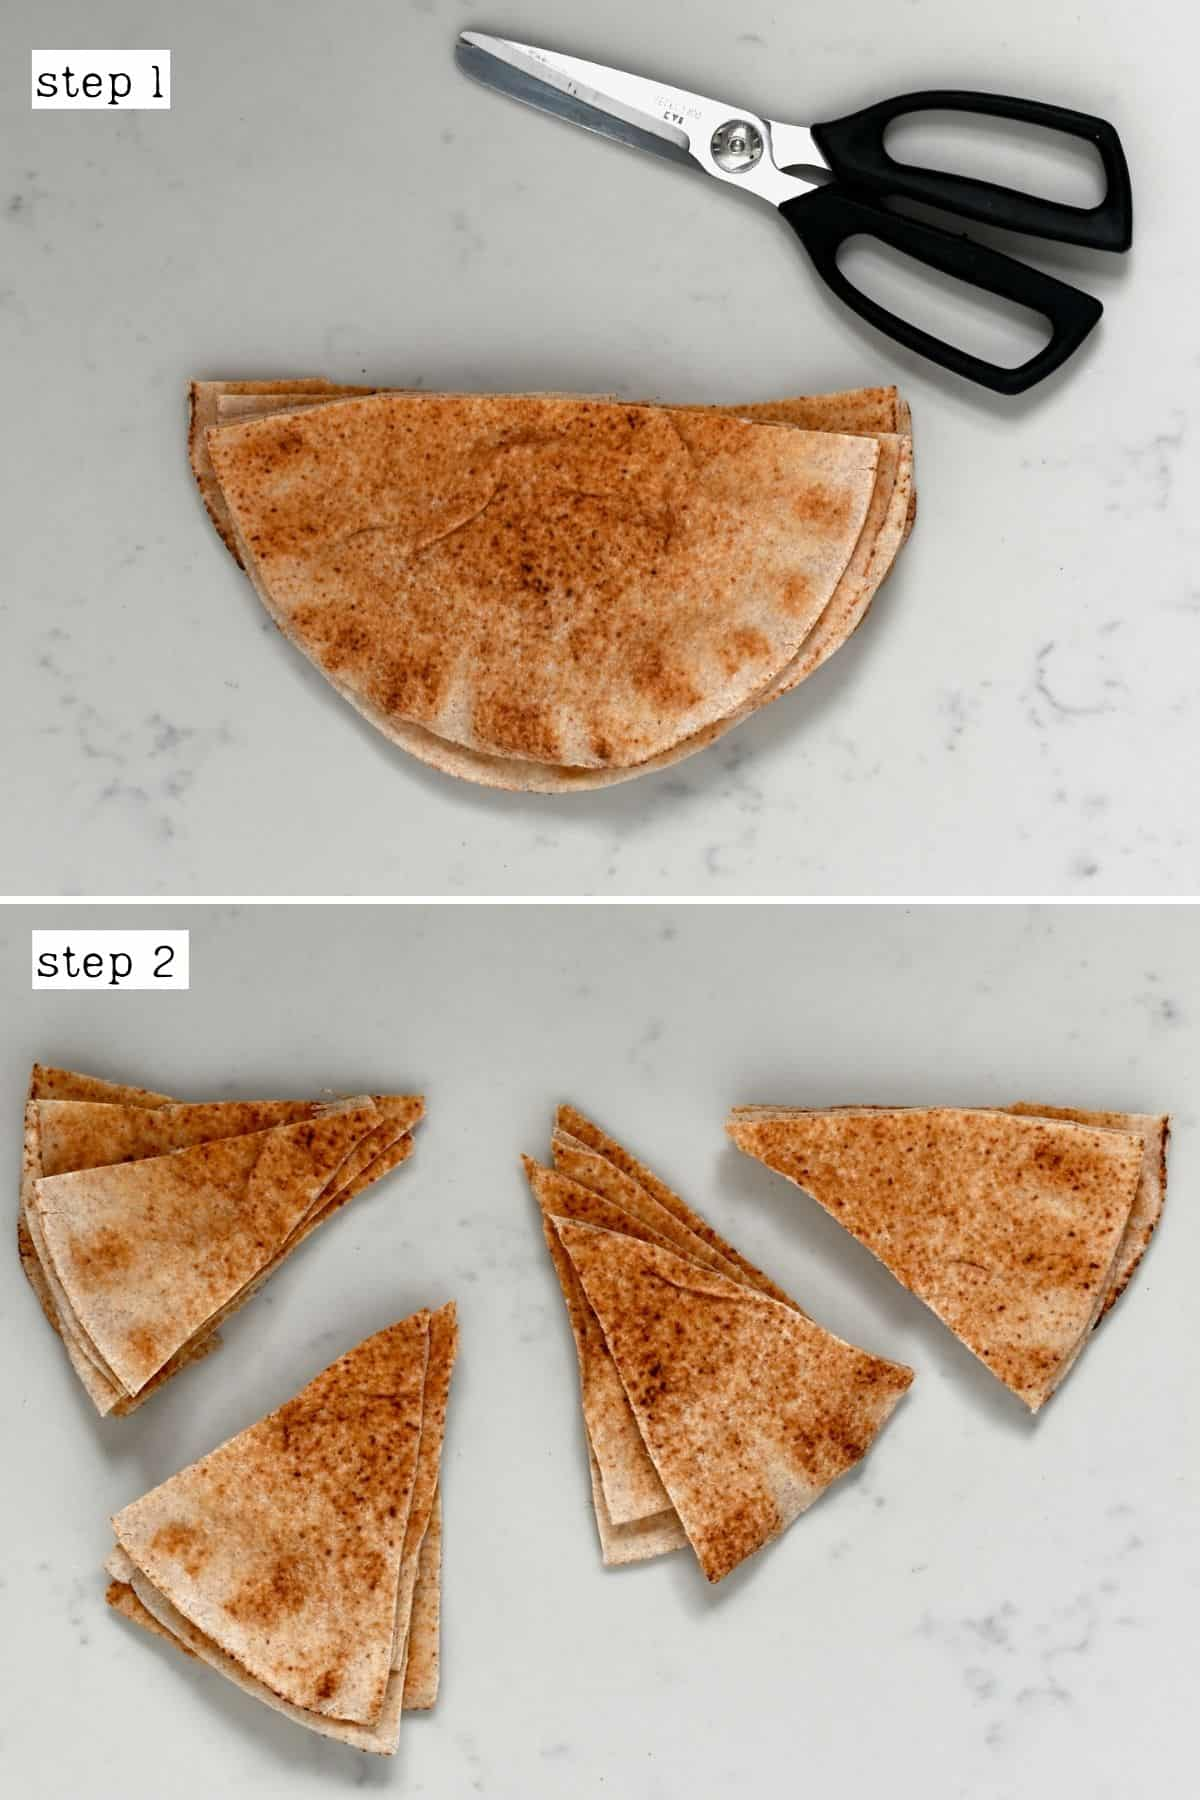 Steps for cutting pita chips